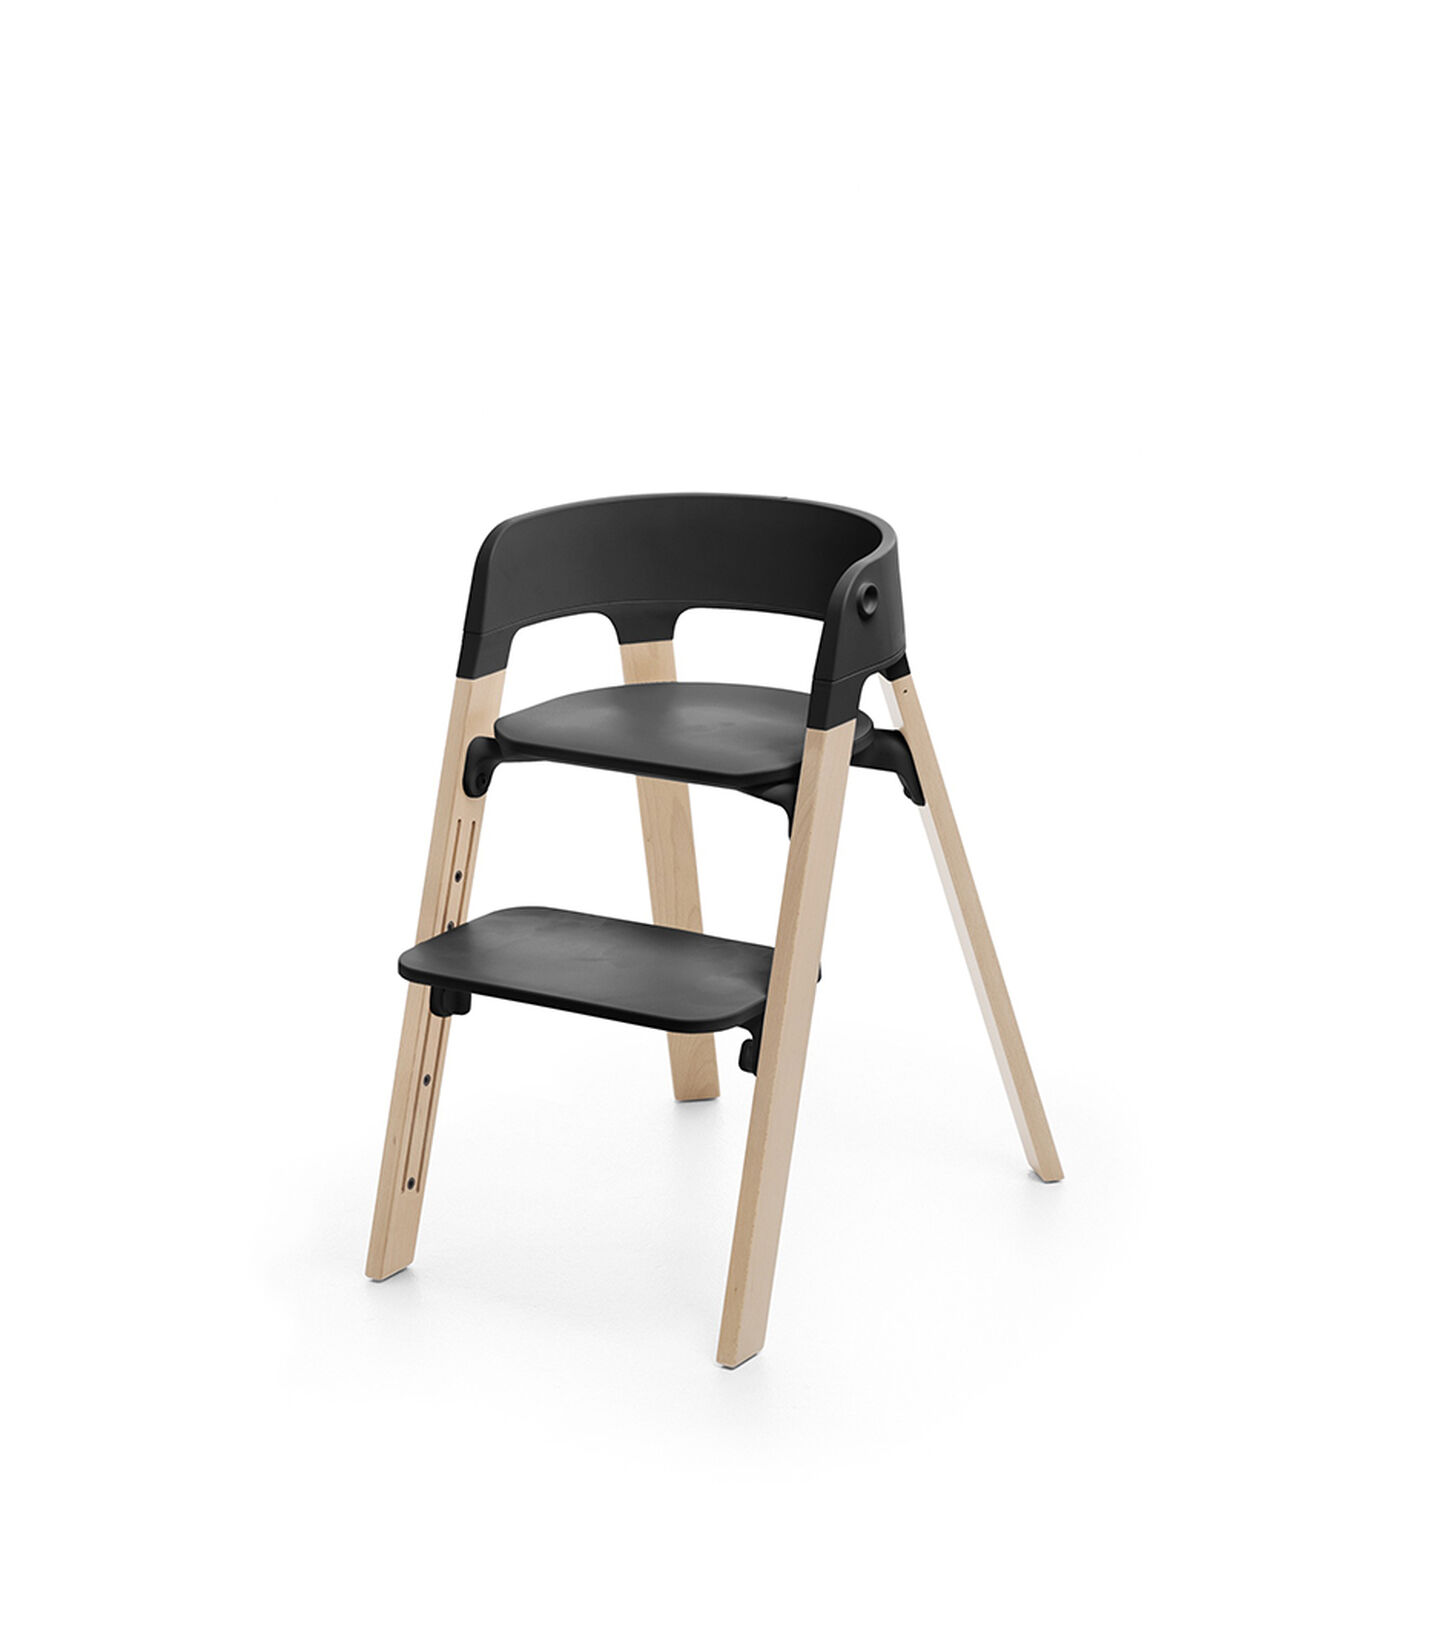 Stokke® Steps™ Chair Black Seat Natural Legs (stokke.com), Natural, mainview view 1